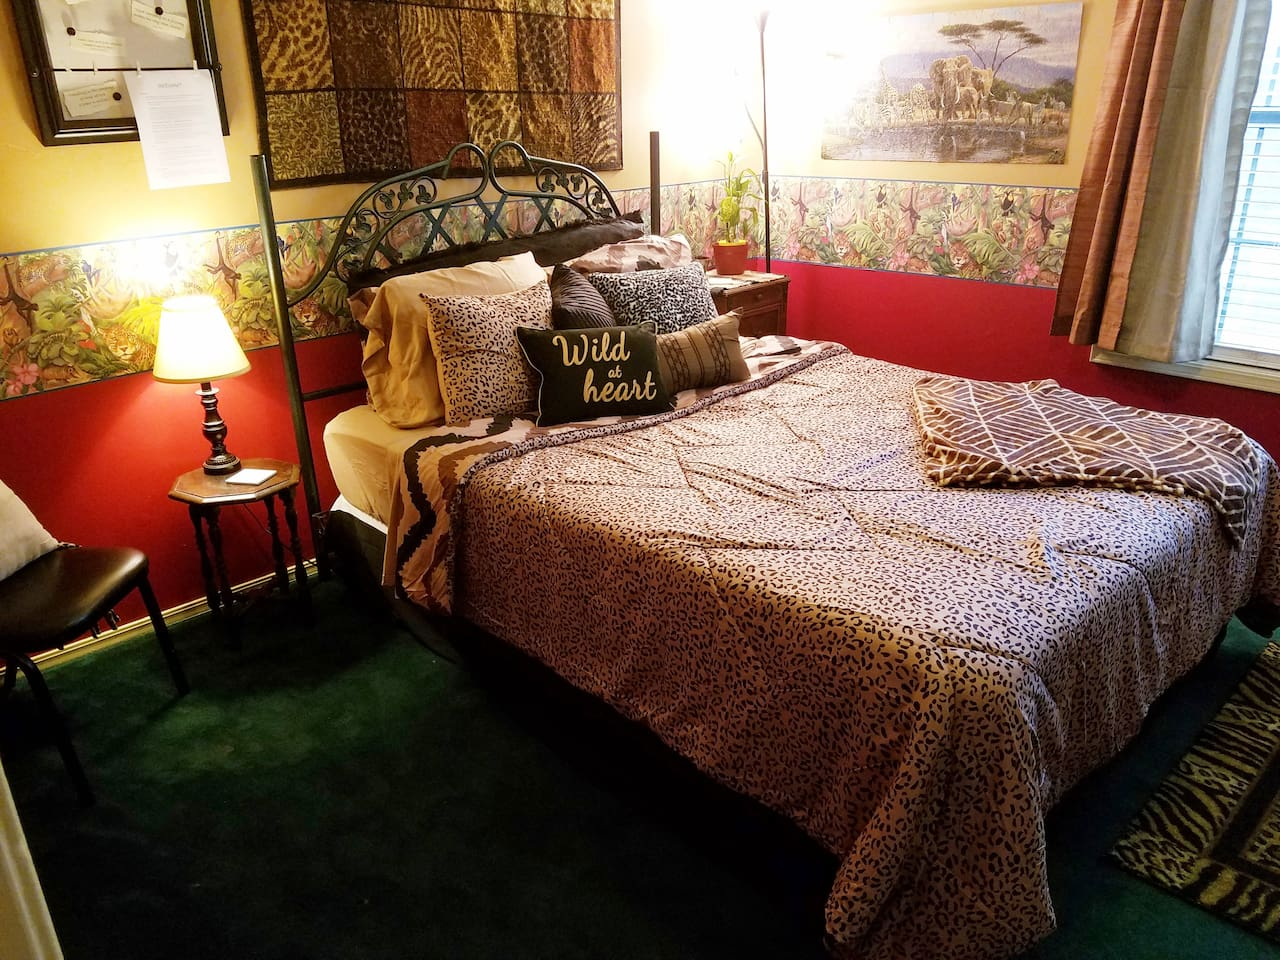 Queen bed, plenty of floor space (add pack n play), night stand & light each side, live plants, 2 walk-in closets, cozy linens, varied pillows, desk & chair, fun decor, large window w/view, black out curtains & blinds, let you sleep in, turn down.